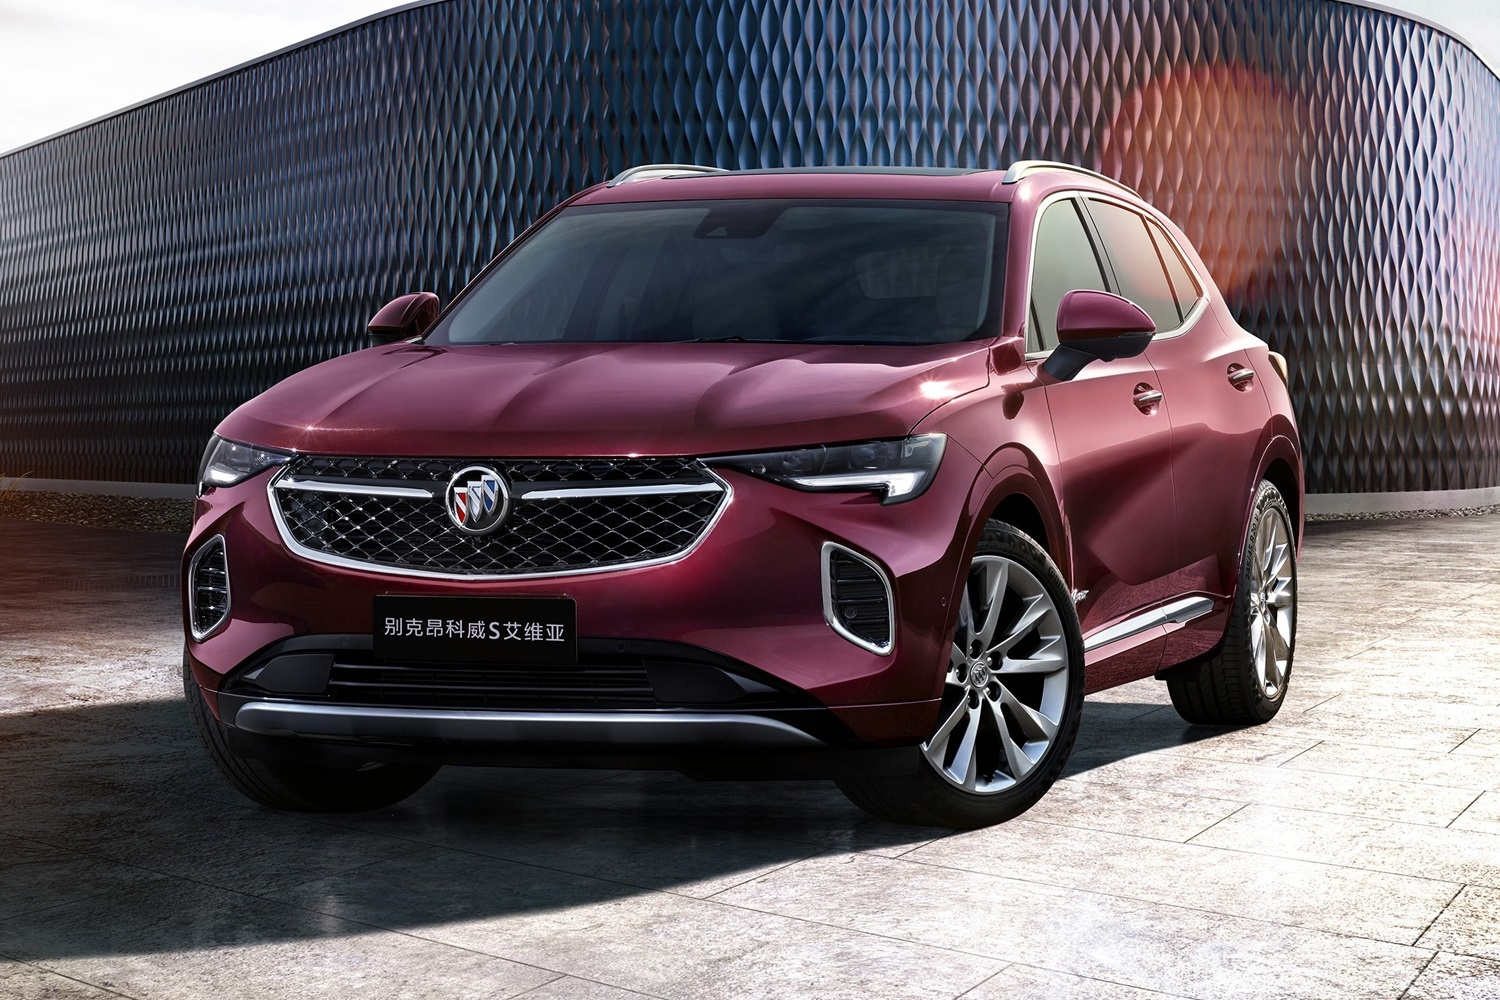 Range-Topping 2021 Buick Envision Avenir Revealed | Gm Authority 2022 Buick Enclave Dimensions, Colors, Accessories